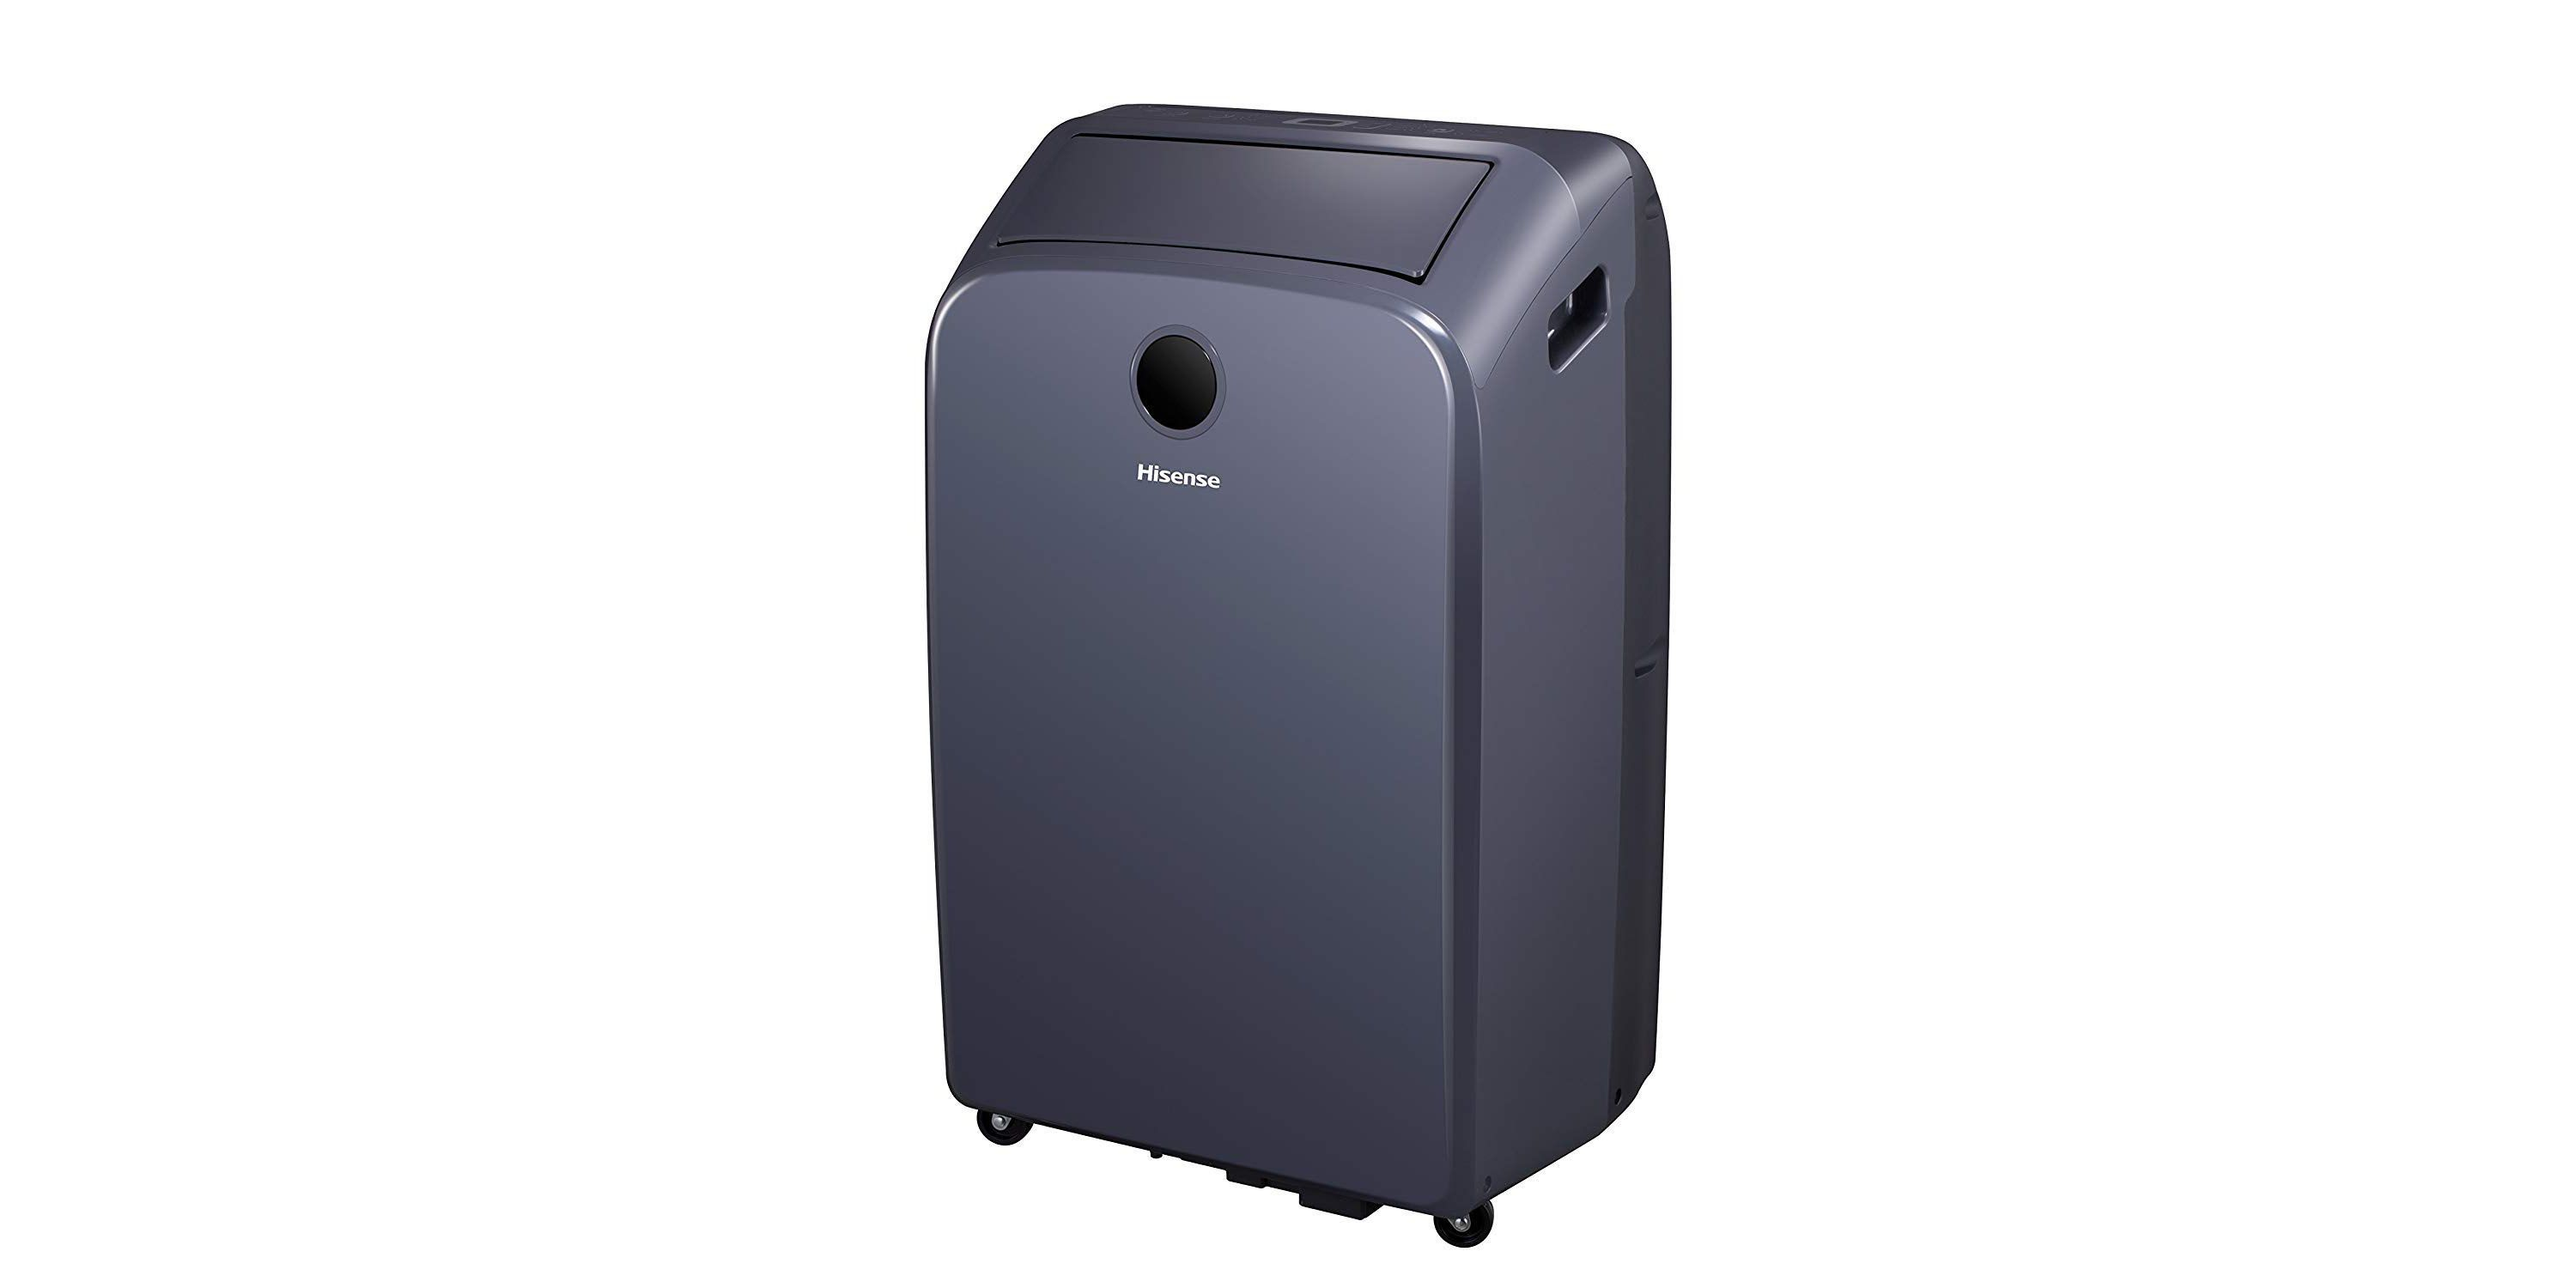 648ea3bfccf Portable Air Conditioners 2019 - Best Small AC Units